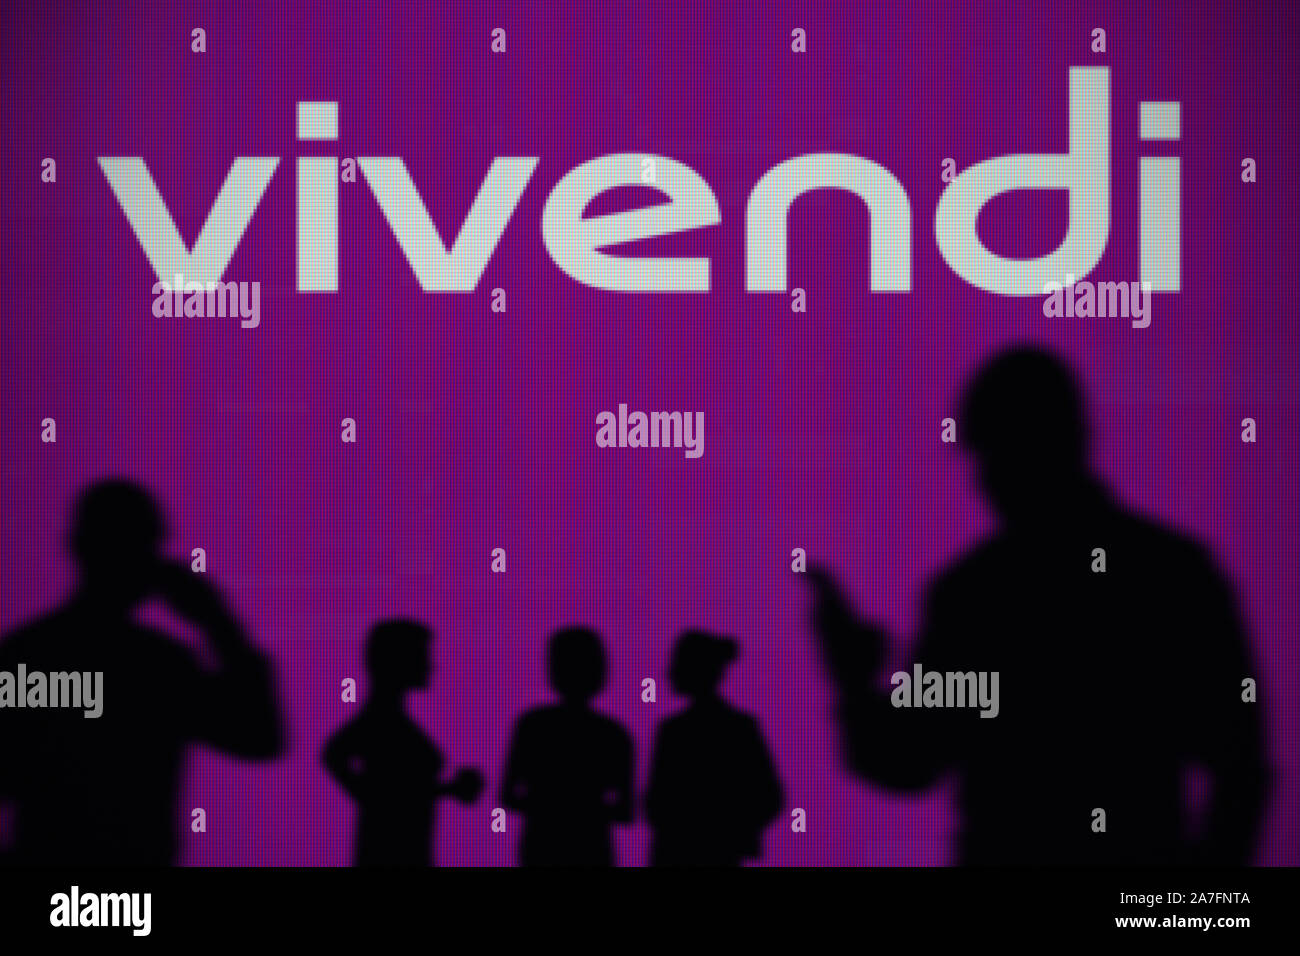 The Vivendi logo is seen on an LED screen in the background while a silhouetted person uses a smartphone (Editorial use only) Stock Photo